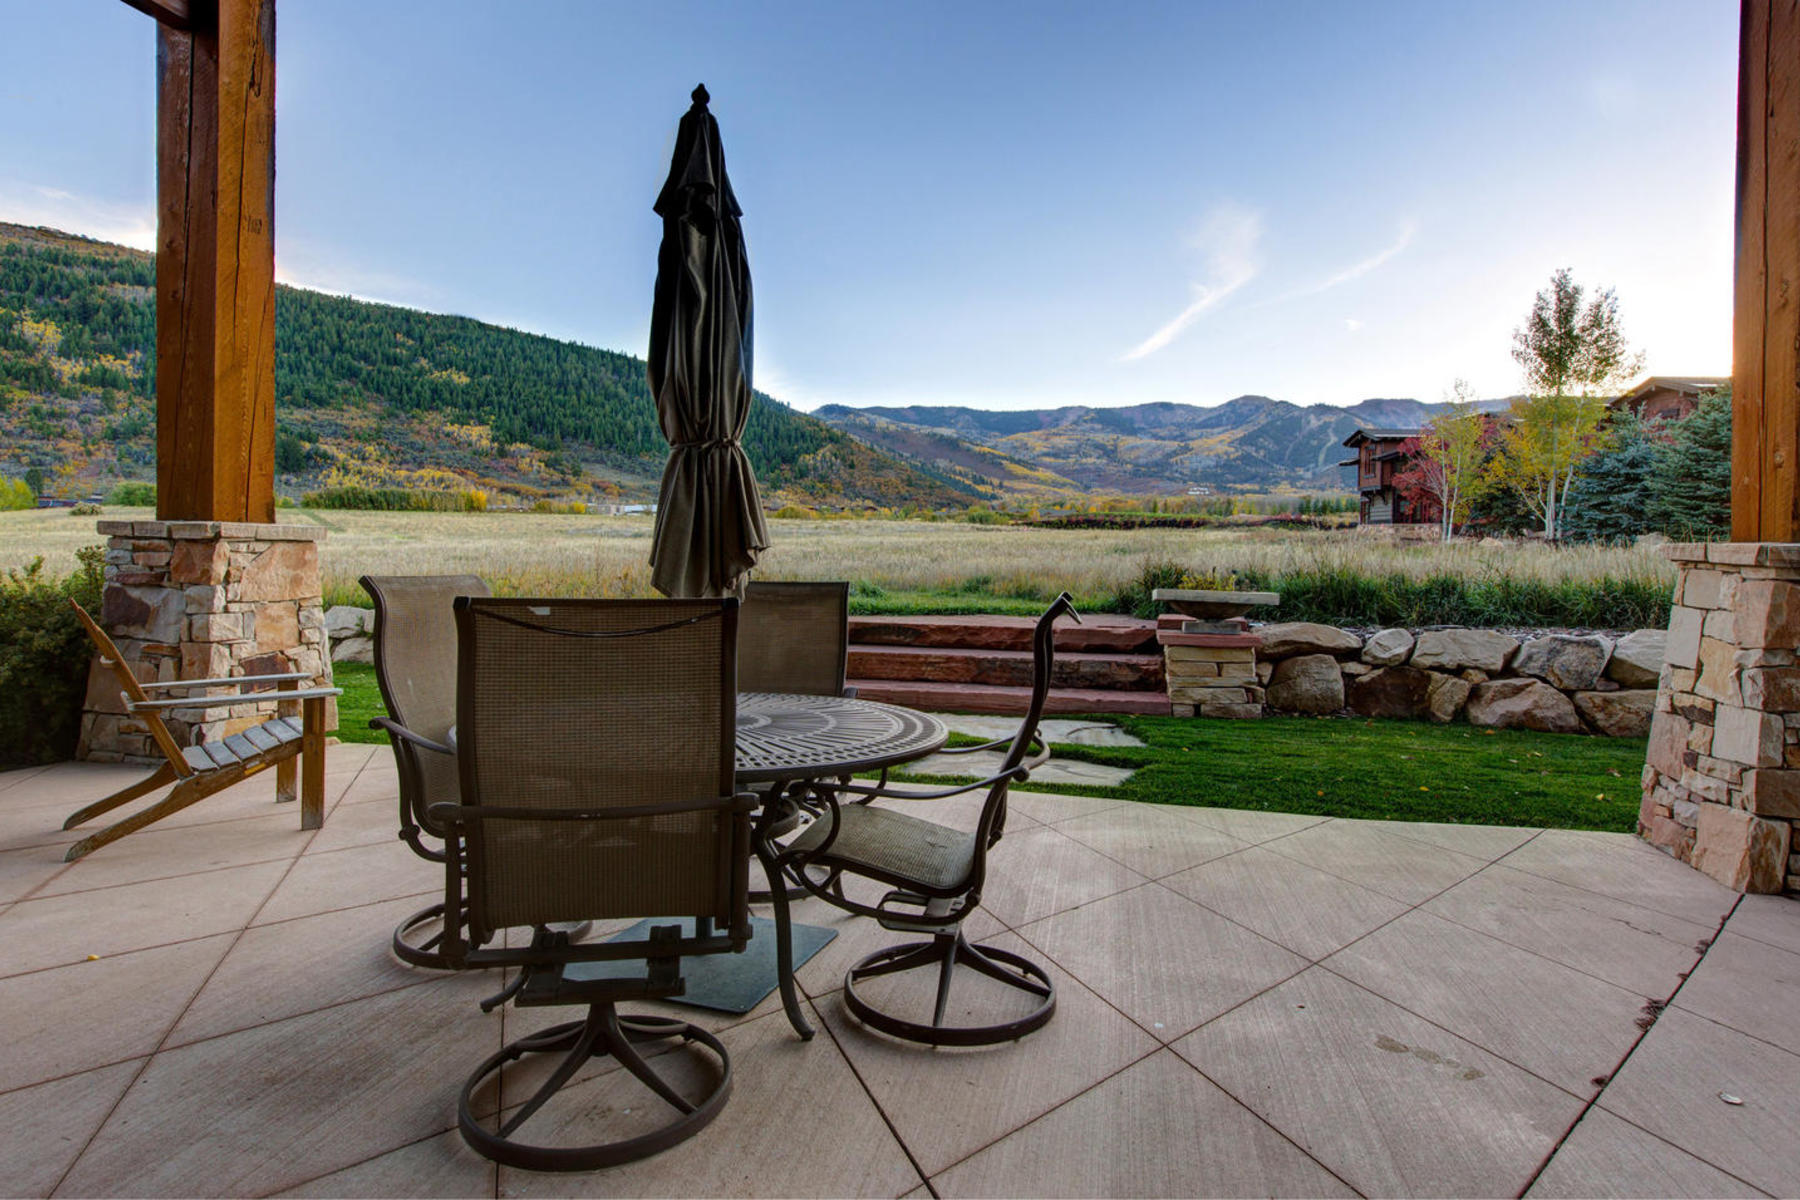 Additional photo for property listing at Stunning Equestrian Property in Gated Community 2934 Quarry Mountain Rd Park City, Utah 84098 United States